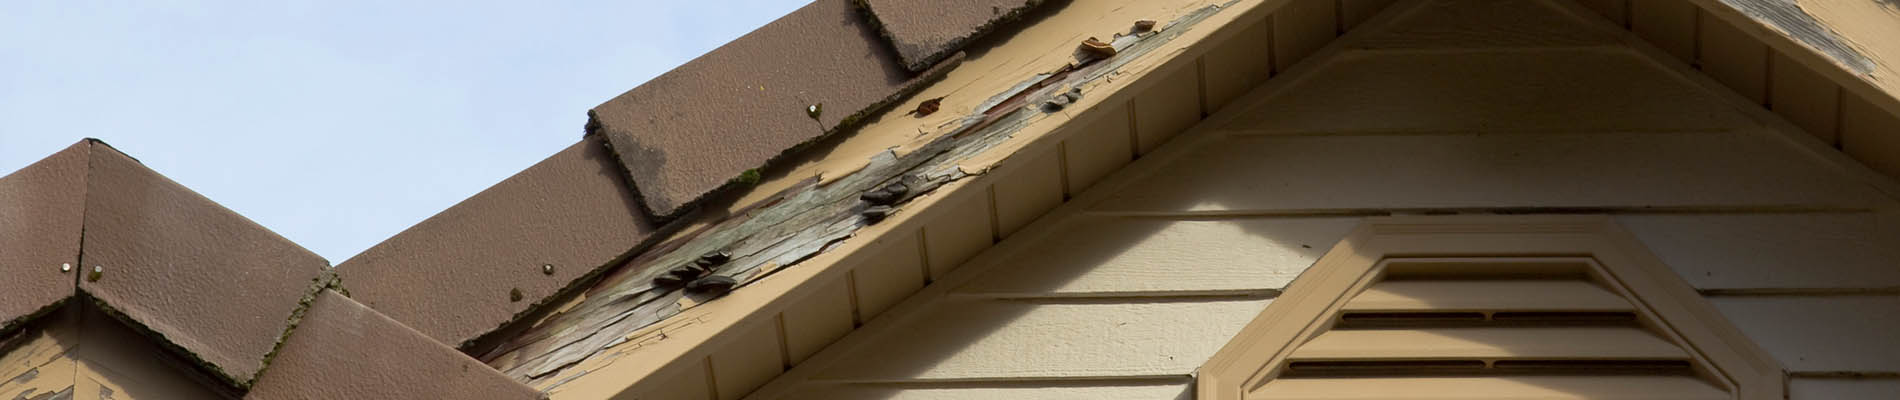 Termite damage treatment